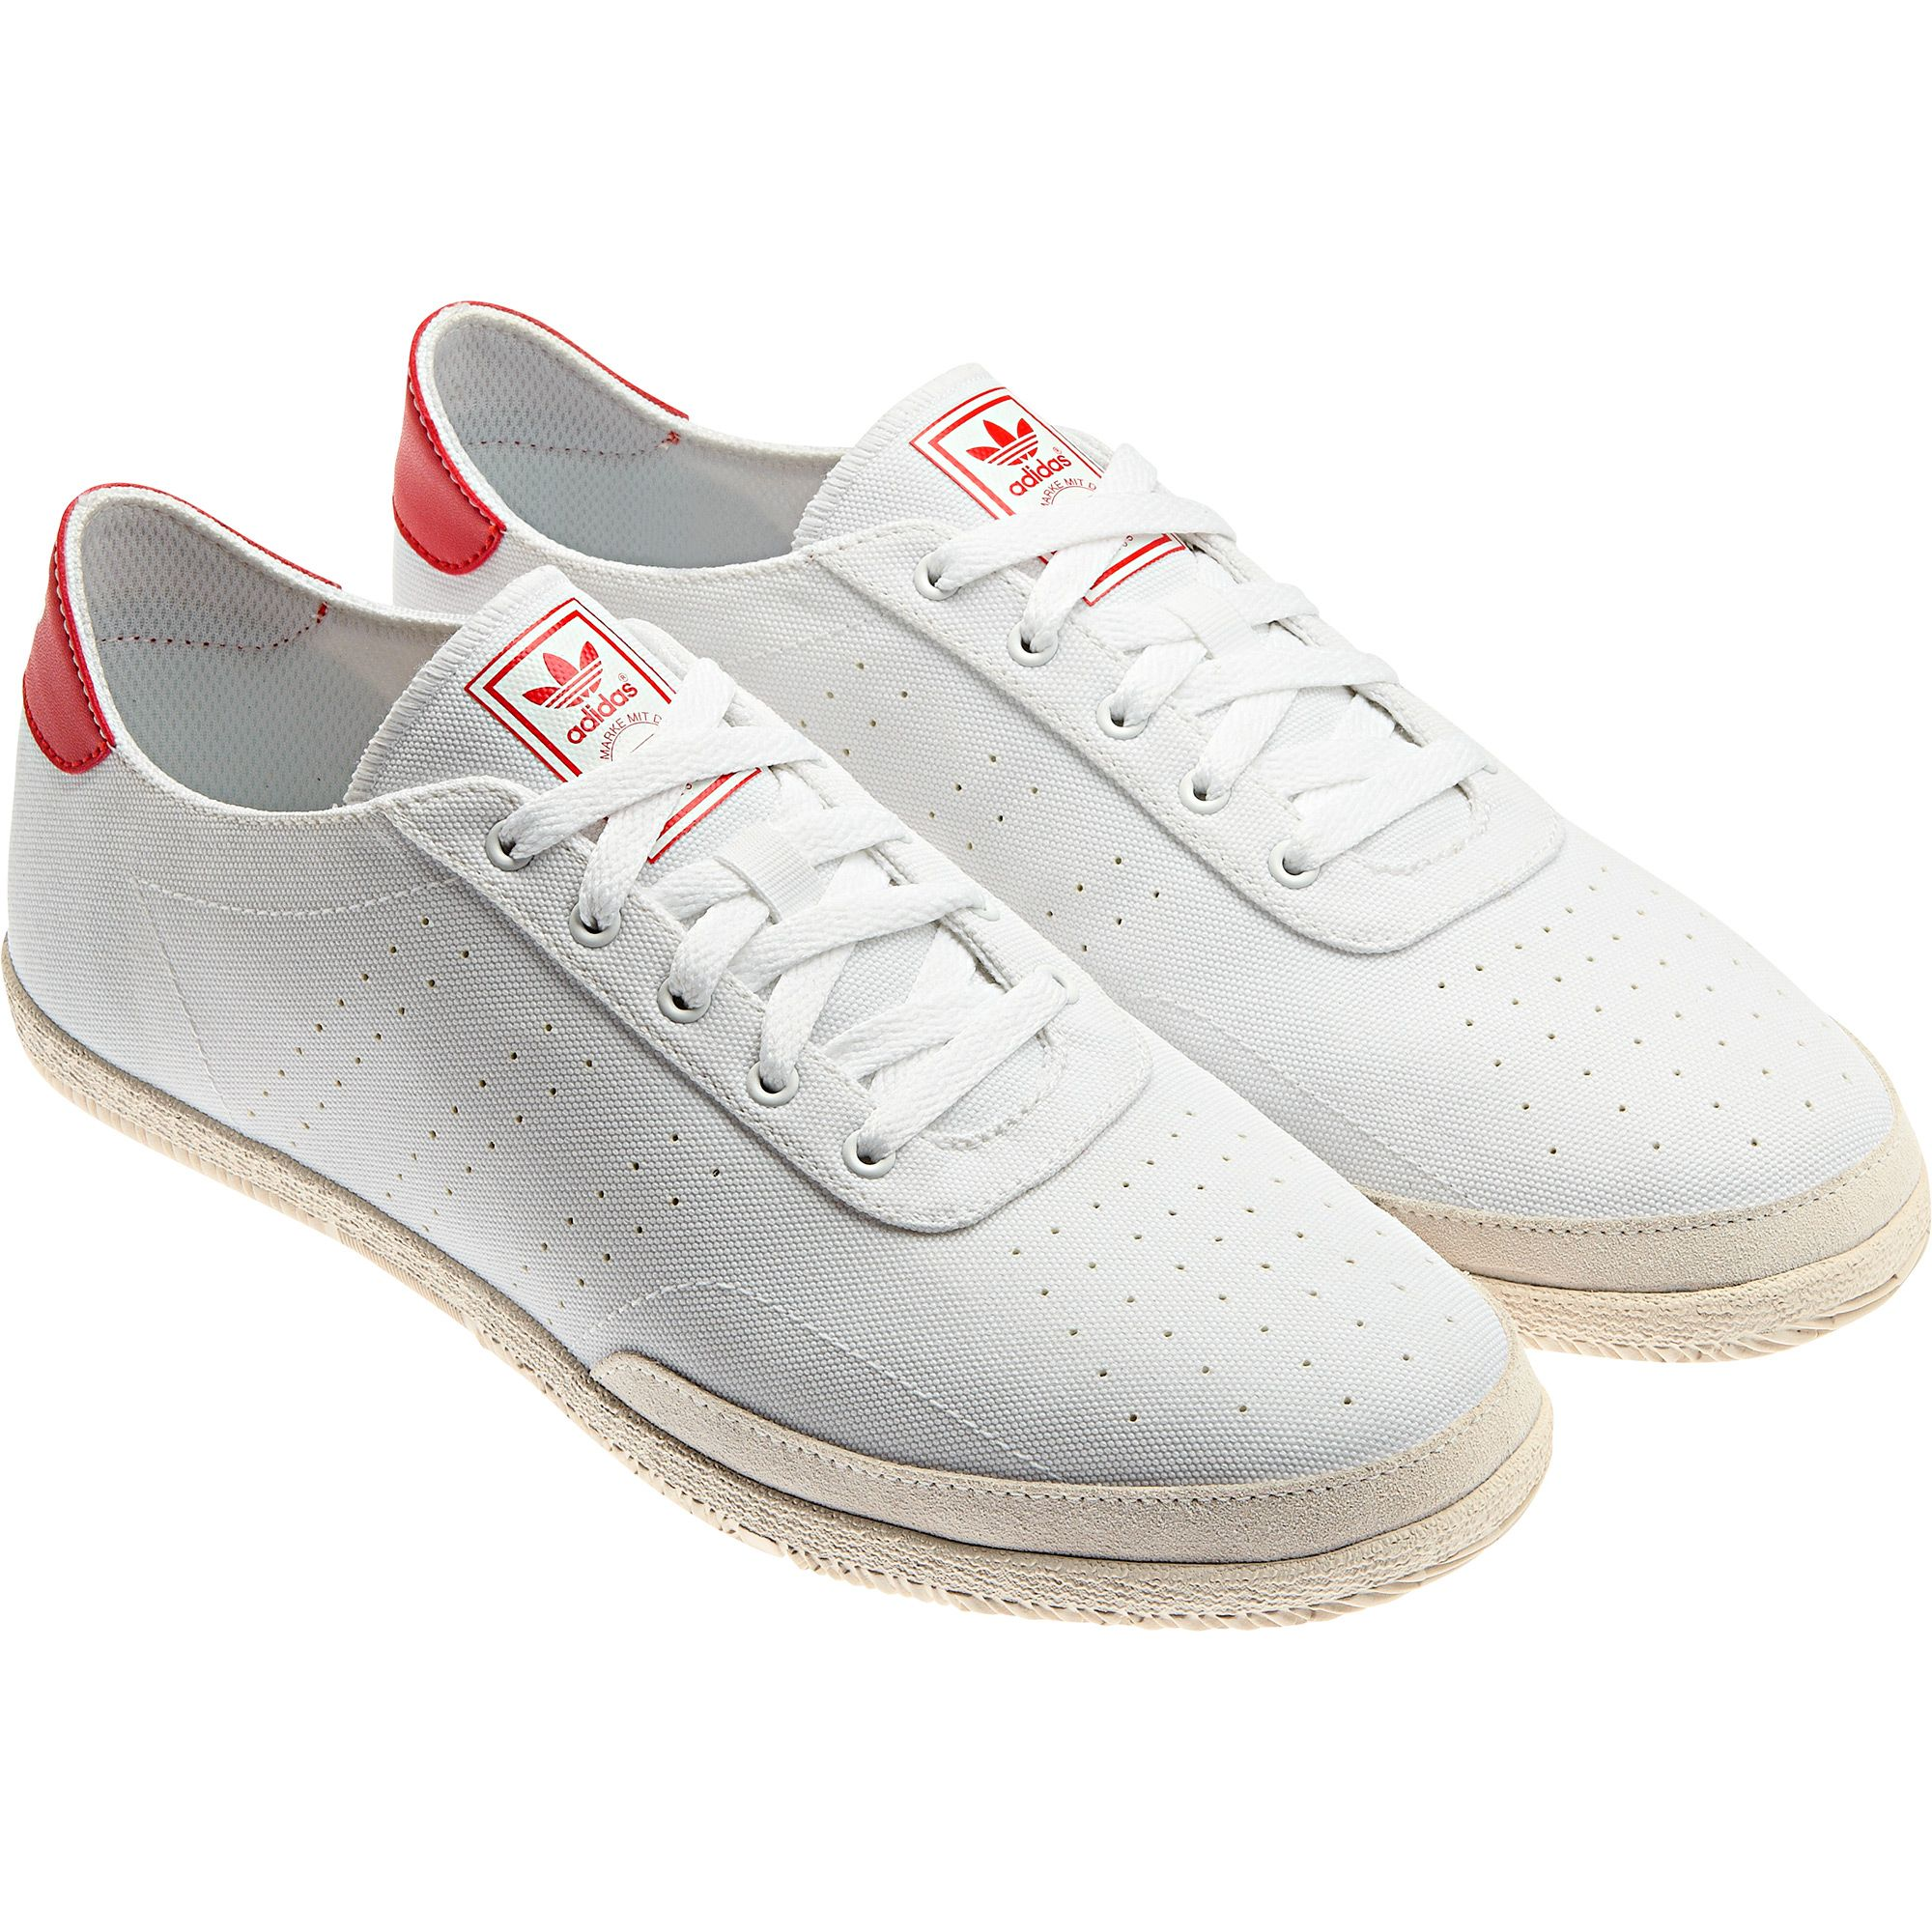 size 40 5c35a d4997 adidas Plimsole 3 Schuh, running white / vivid red / running ...